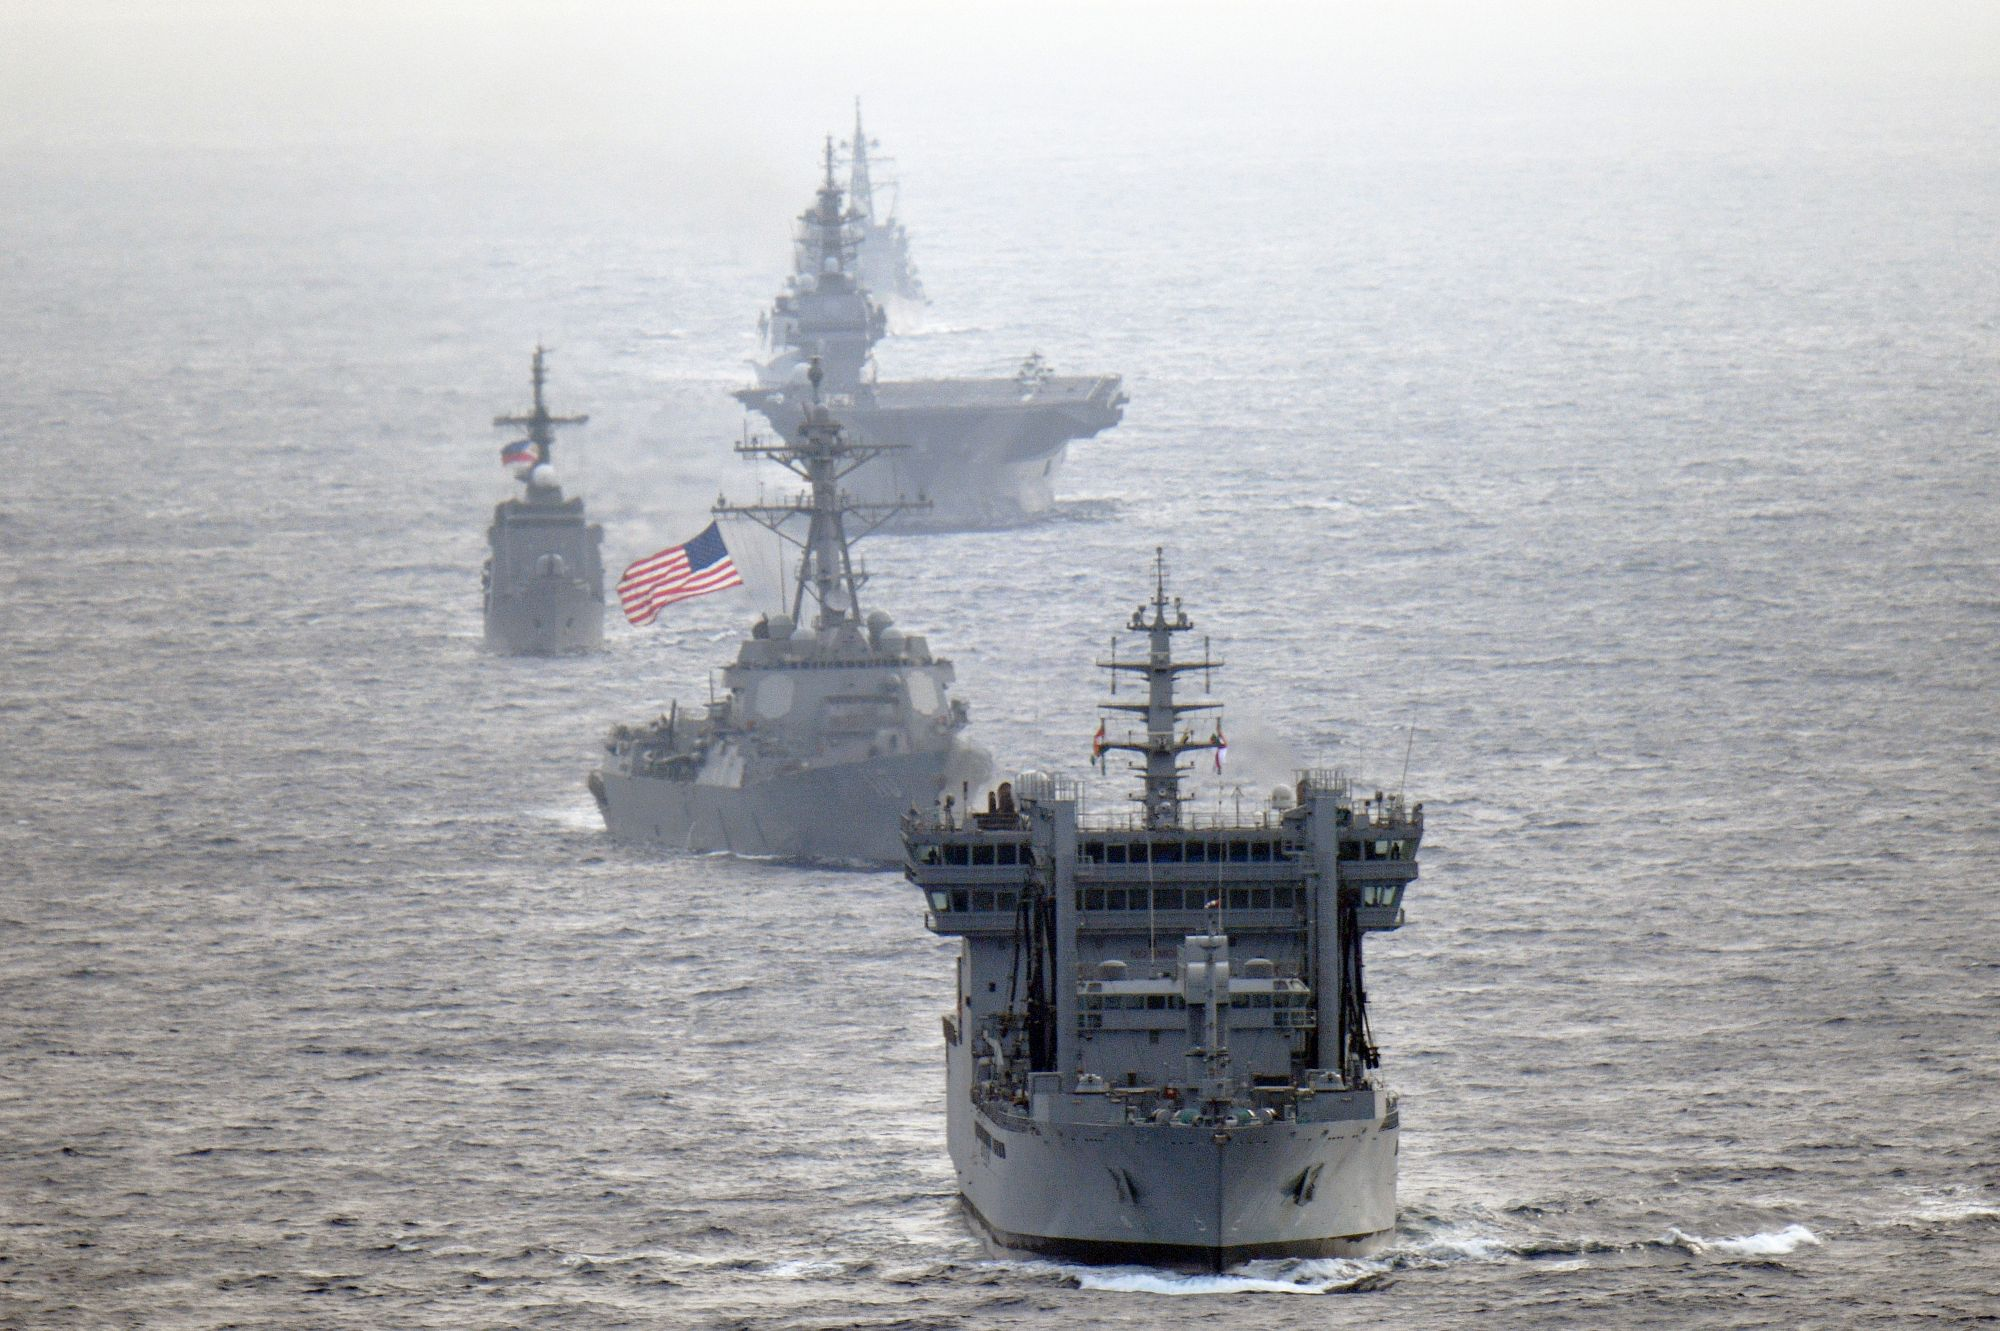 The U.S. Navy guided-missile destroyer USS William P. Lawrence transits through international waters in the South China Sea with the Indian Navy destroyer INS Kolkata and tanker INS Shakti, the Maritime Self-Defense Force helicopter carrier Izumo and destroyer Murasame and the Philippine Navy patrol ship BRP Andres Bonifacio. | MSDF